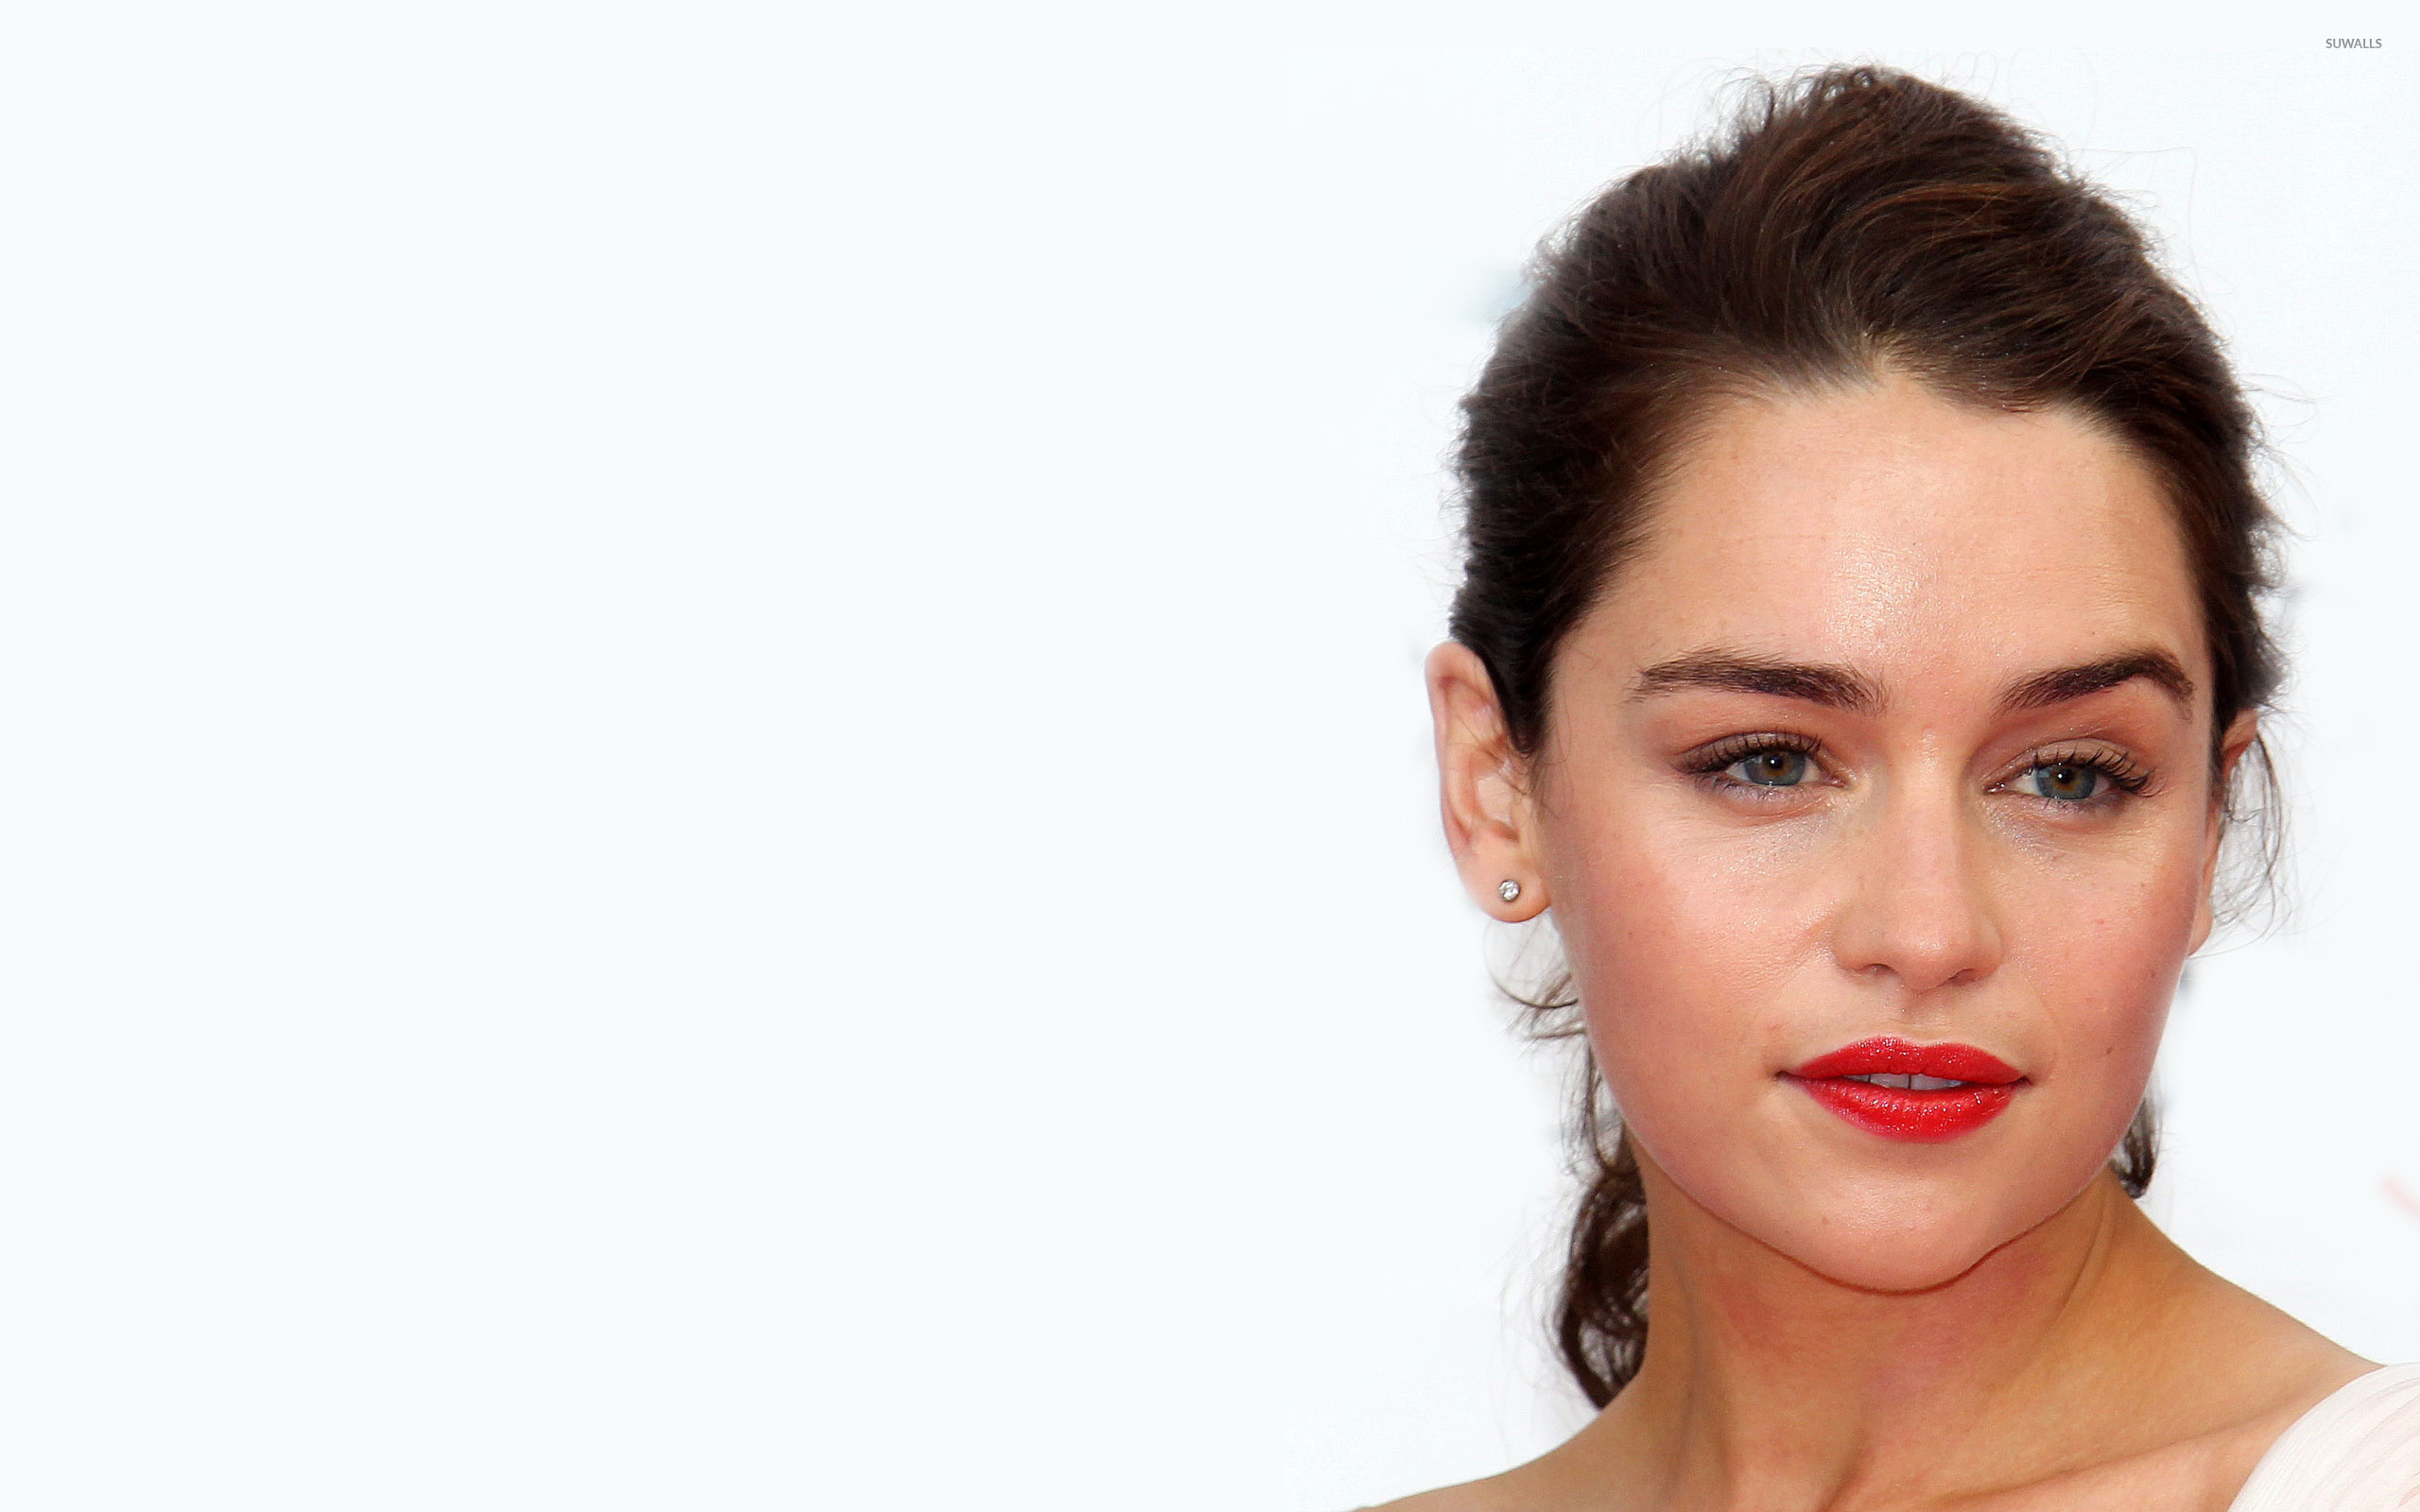 emilia clarke 2012 wallpapers driverlayer search engine